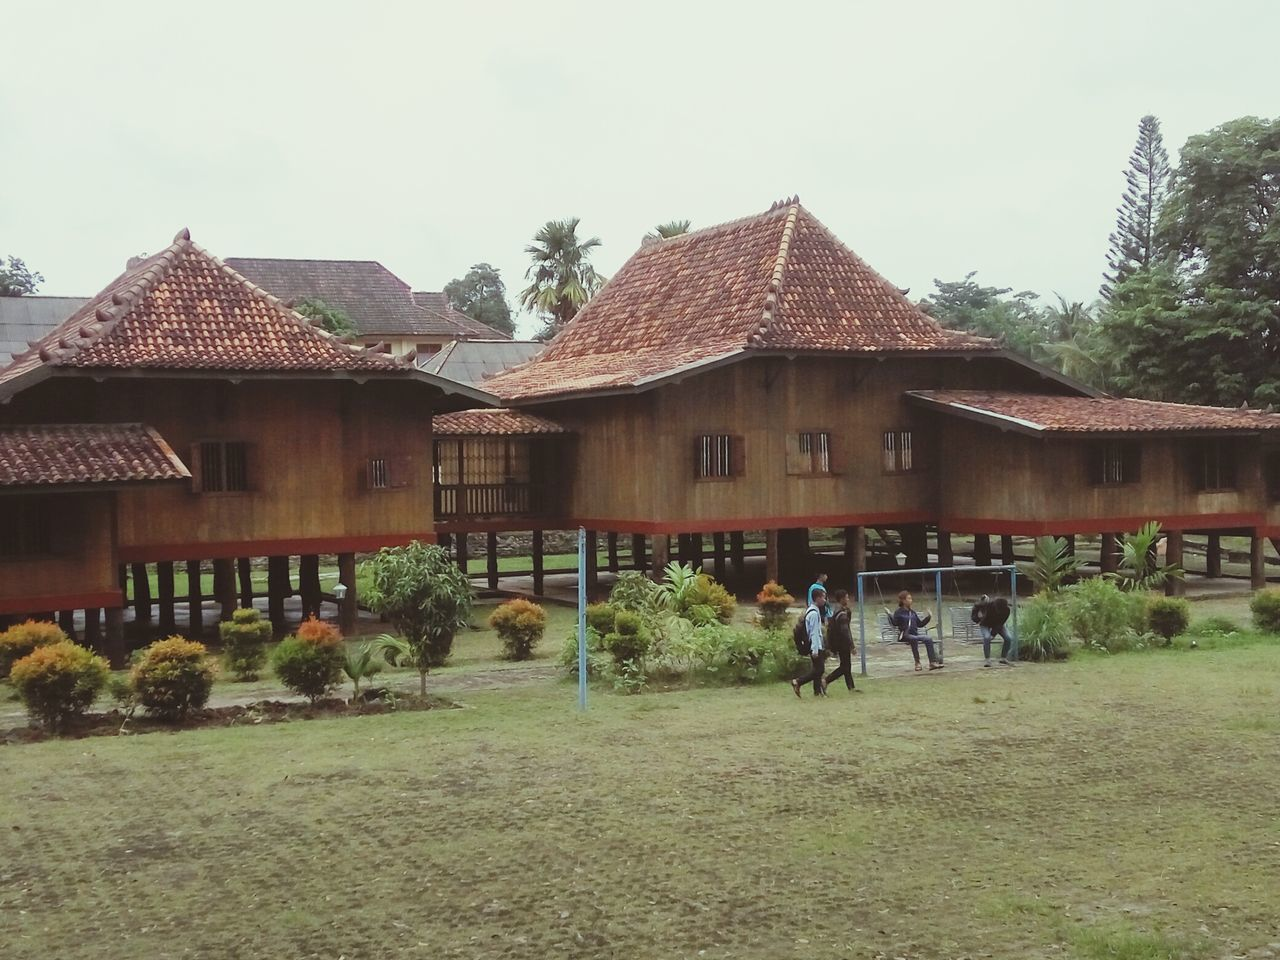 South Sumatra Traditional House, Palembang, Indonesia Architecture Building Exterior Built Structure House Travel Destinations INDONESIA Tradition Cultures Finding New Frontiers